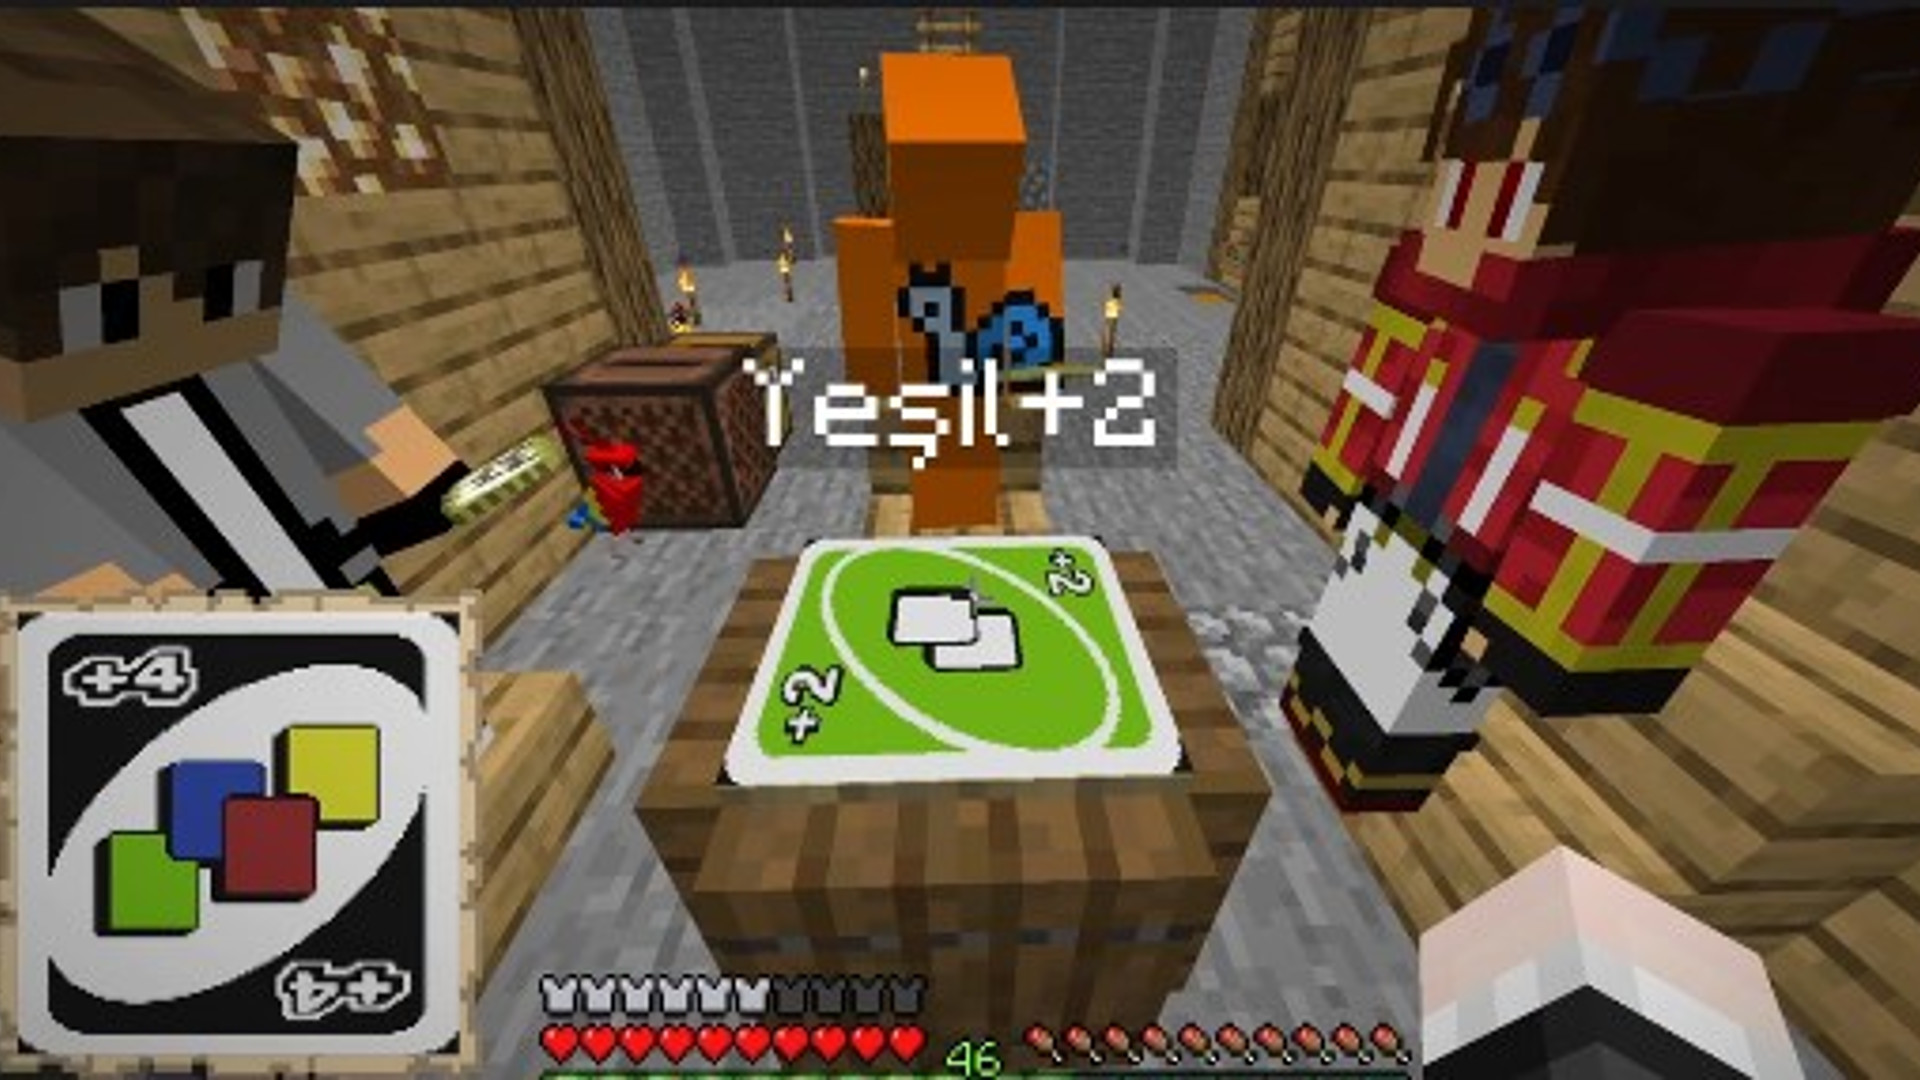 Minecraft player builds playable Uno